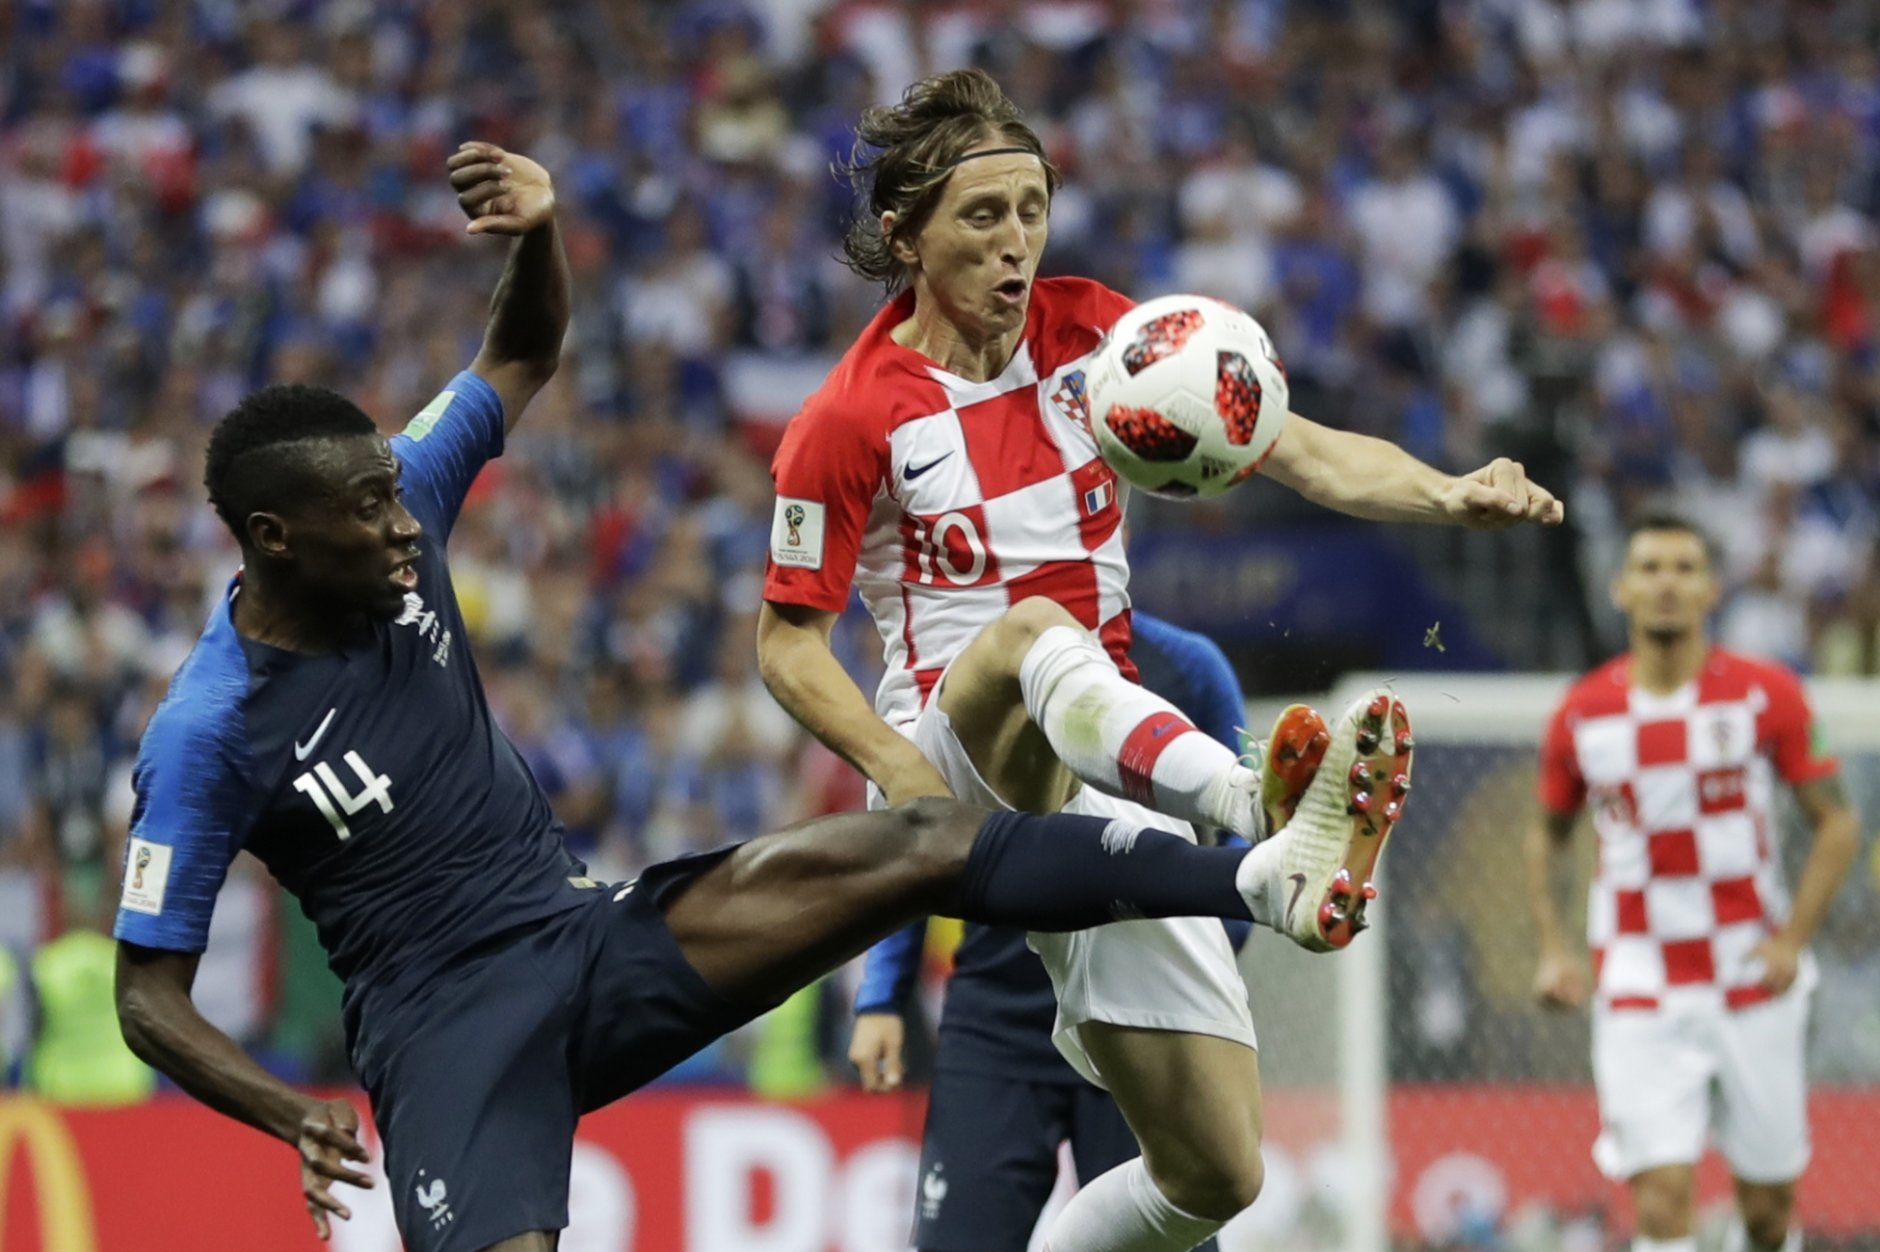 Croatia's Luka Modric, right, vies for the ball with France's Blaise Matuidi, left, during the final match between France and Croatia at the 2018 soccer World Cup in the Luzhniki Stadium in Moscow, Russia, Sunday, July 15, 2018. (AP Photo/Matthias Schrader)